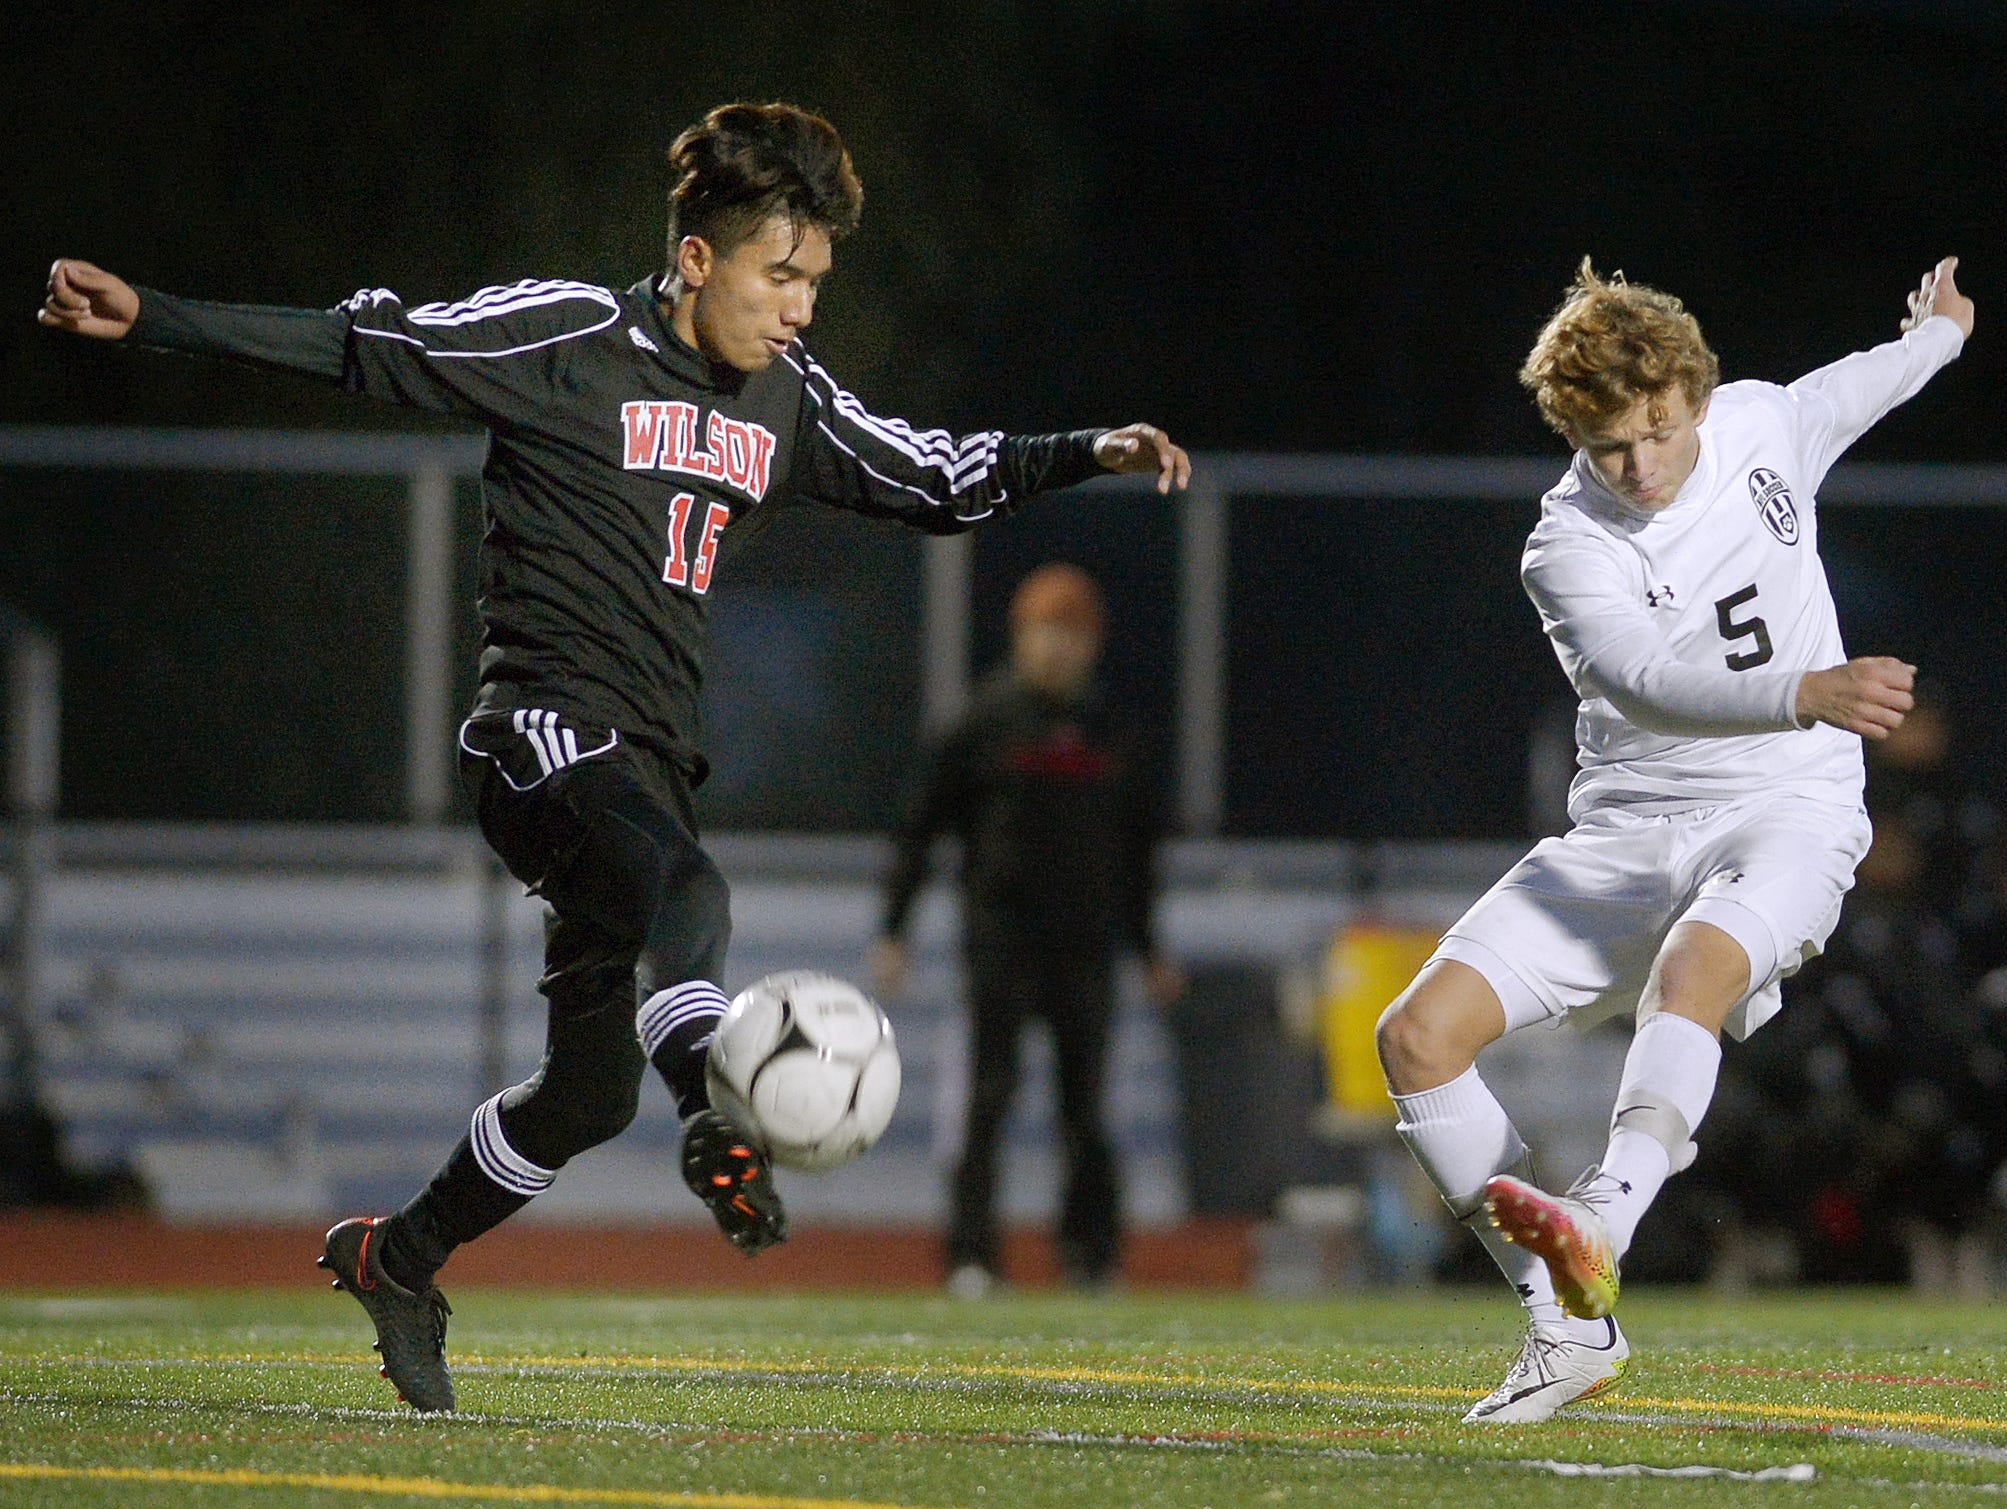 Wilson's Amrit Gurung, left, blocks a kick by HF-L's Roth Wetzel during the Section V Class A2 final at Hilton High School on Oct. 28, 2016.